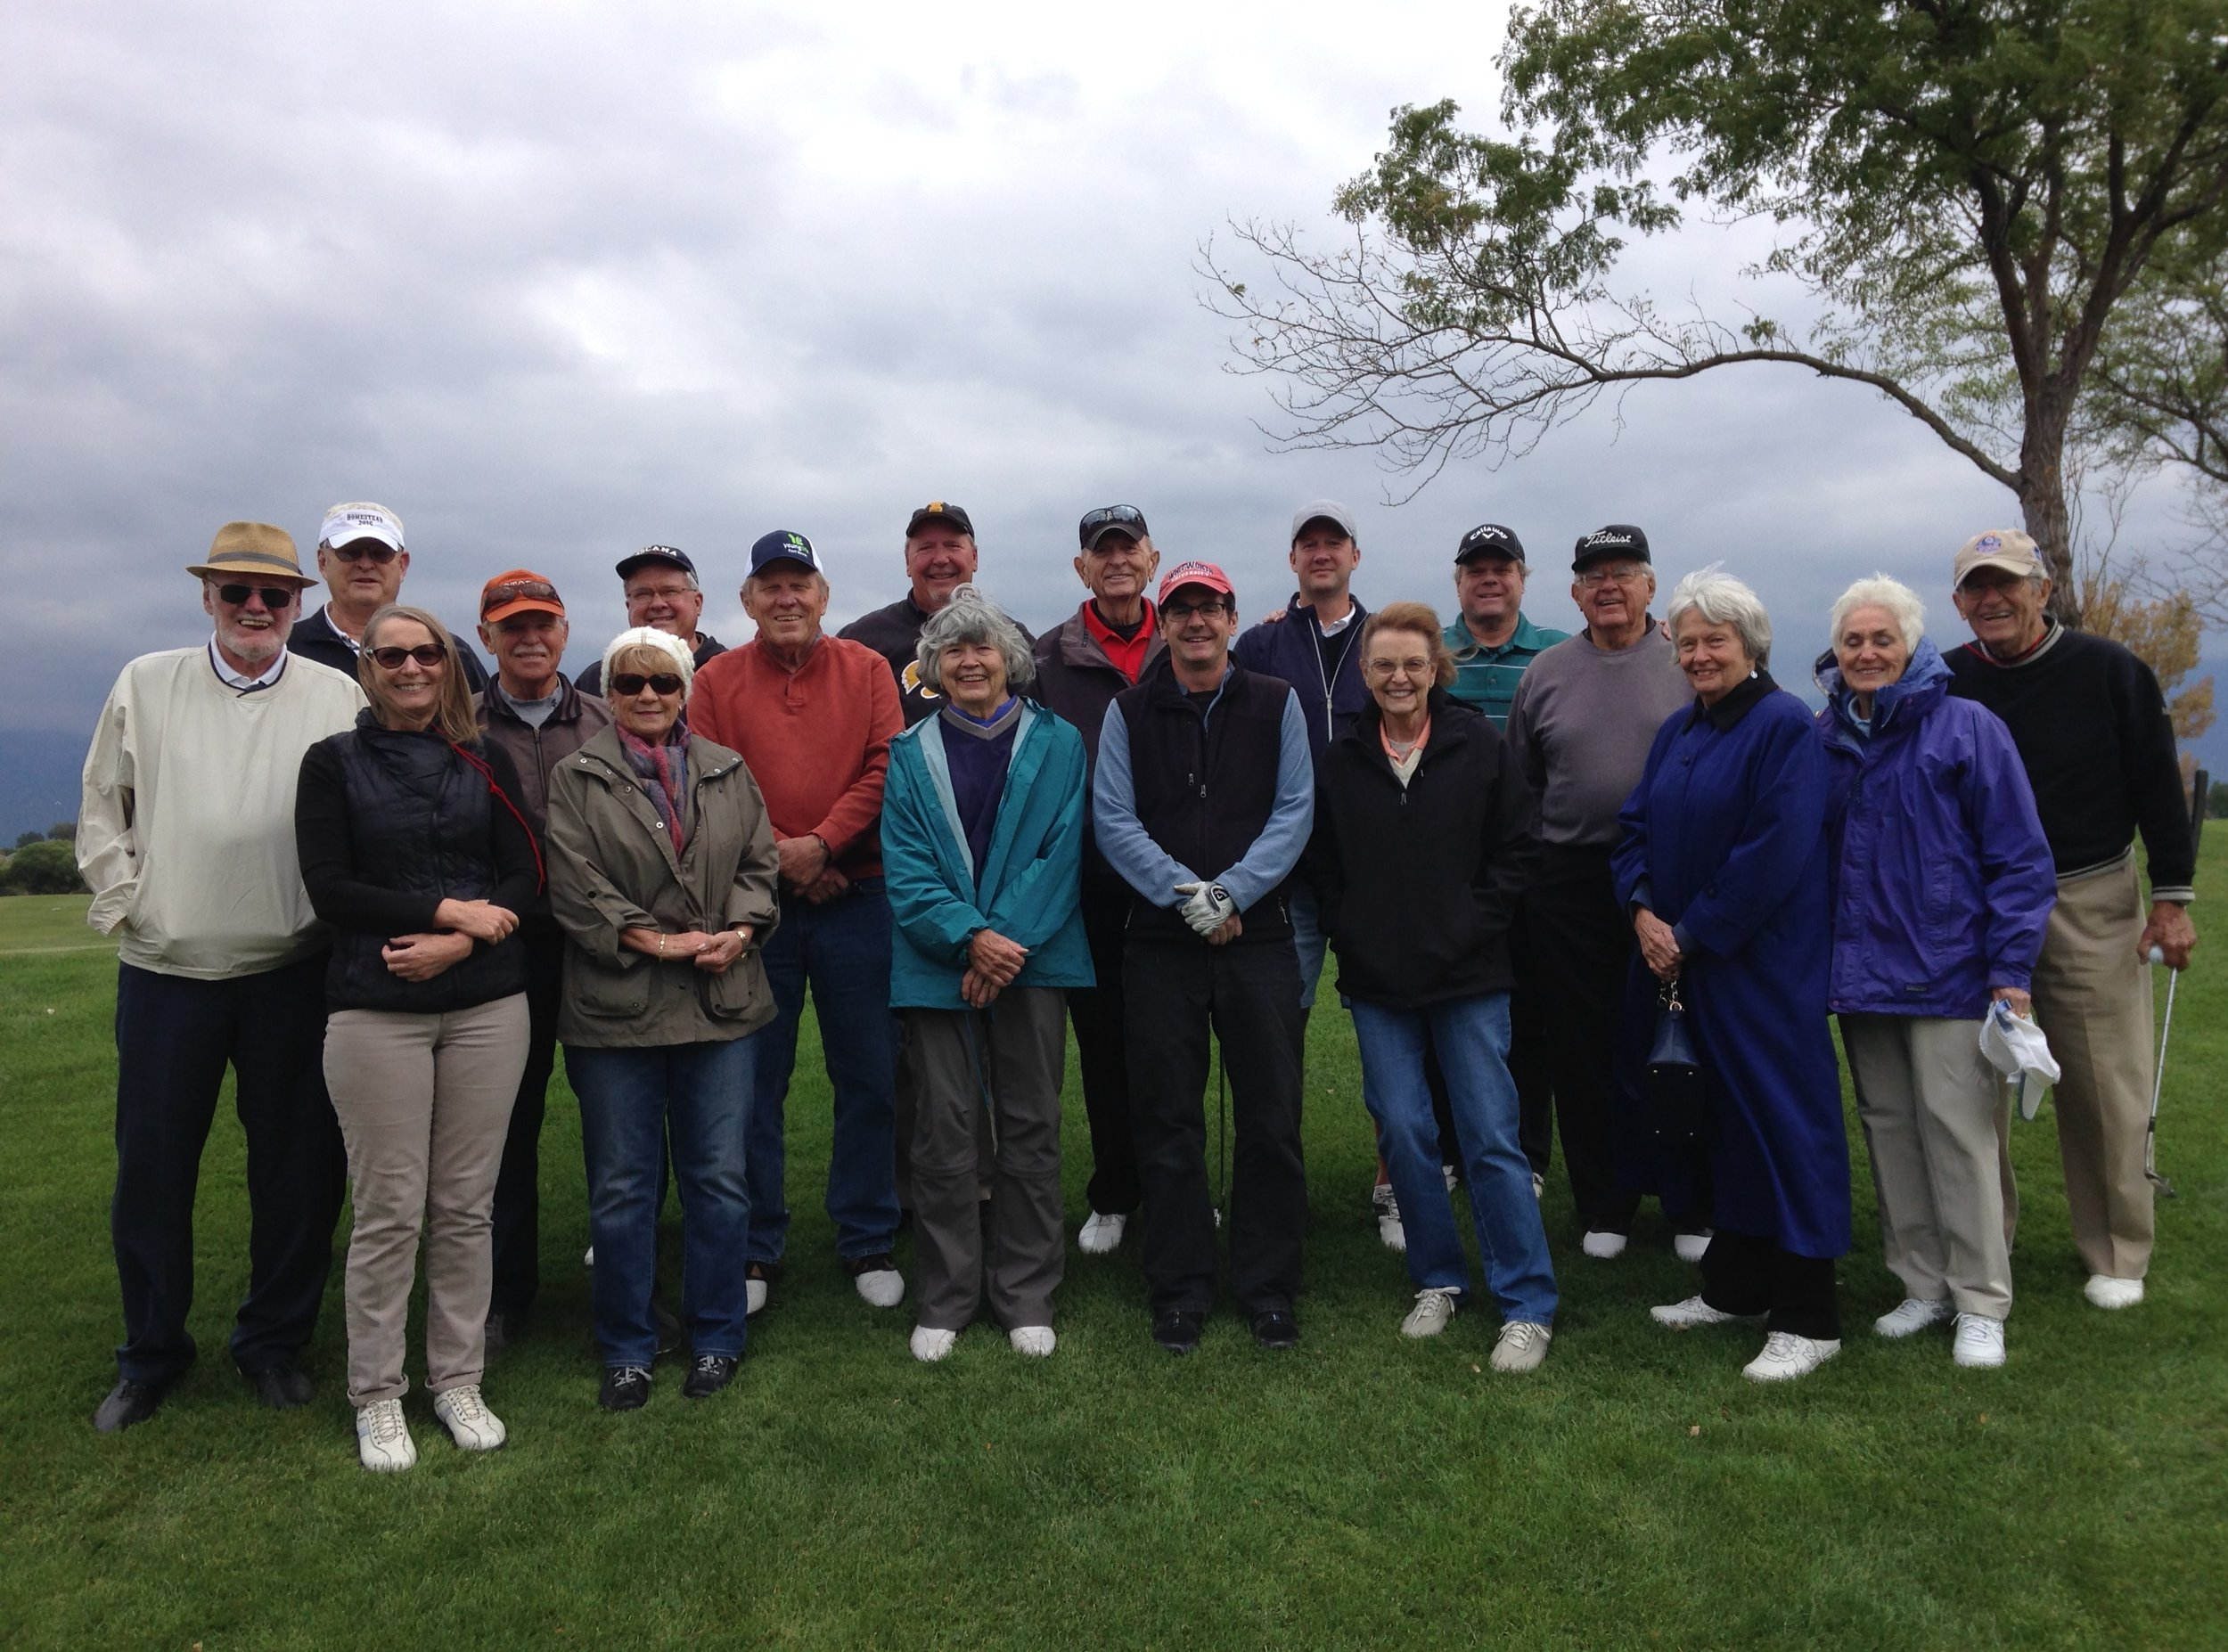 Thank you to everyone who braved the weather to participated in Cottonwood's 16th Annual Golf Tournament.